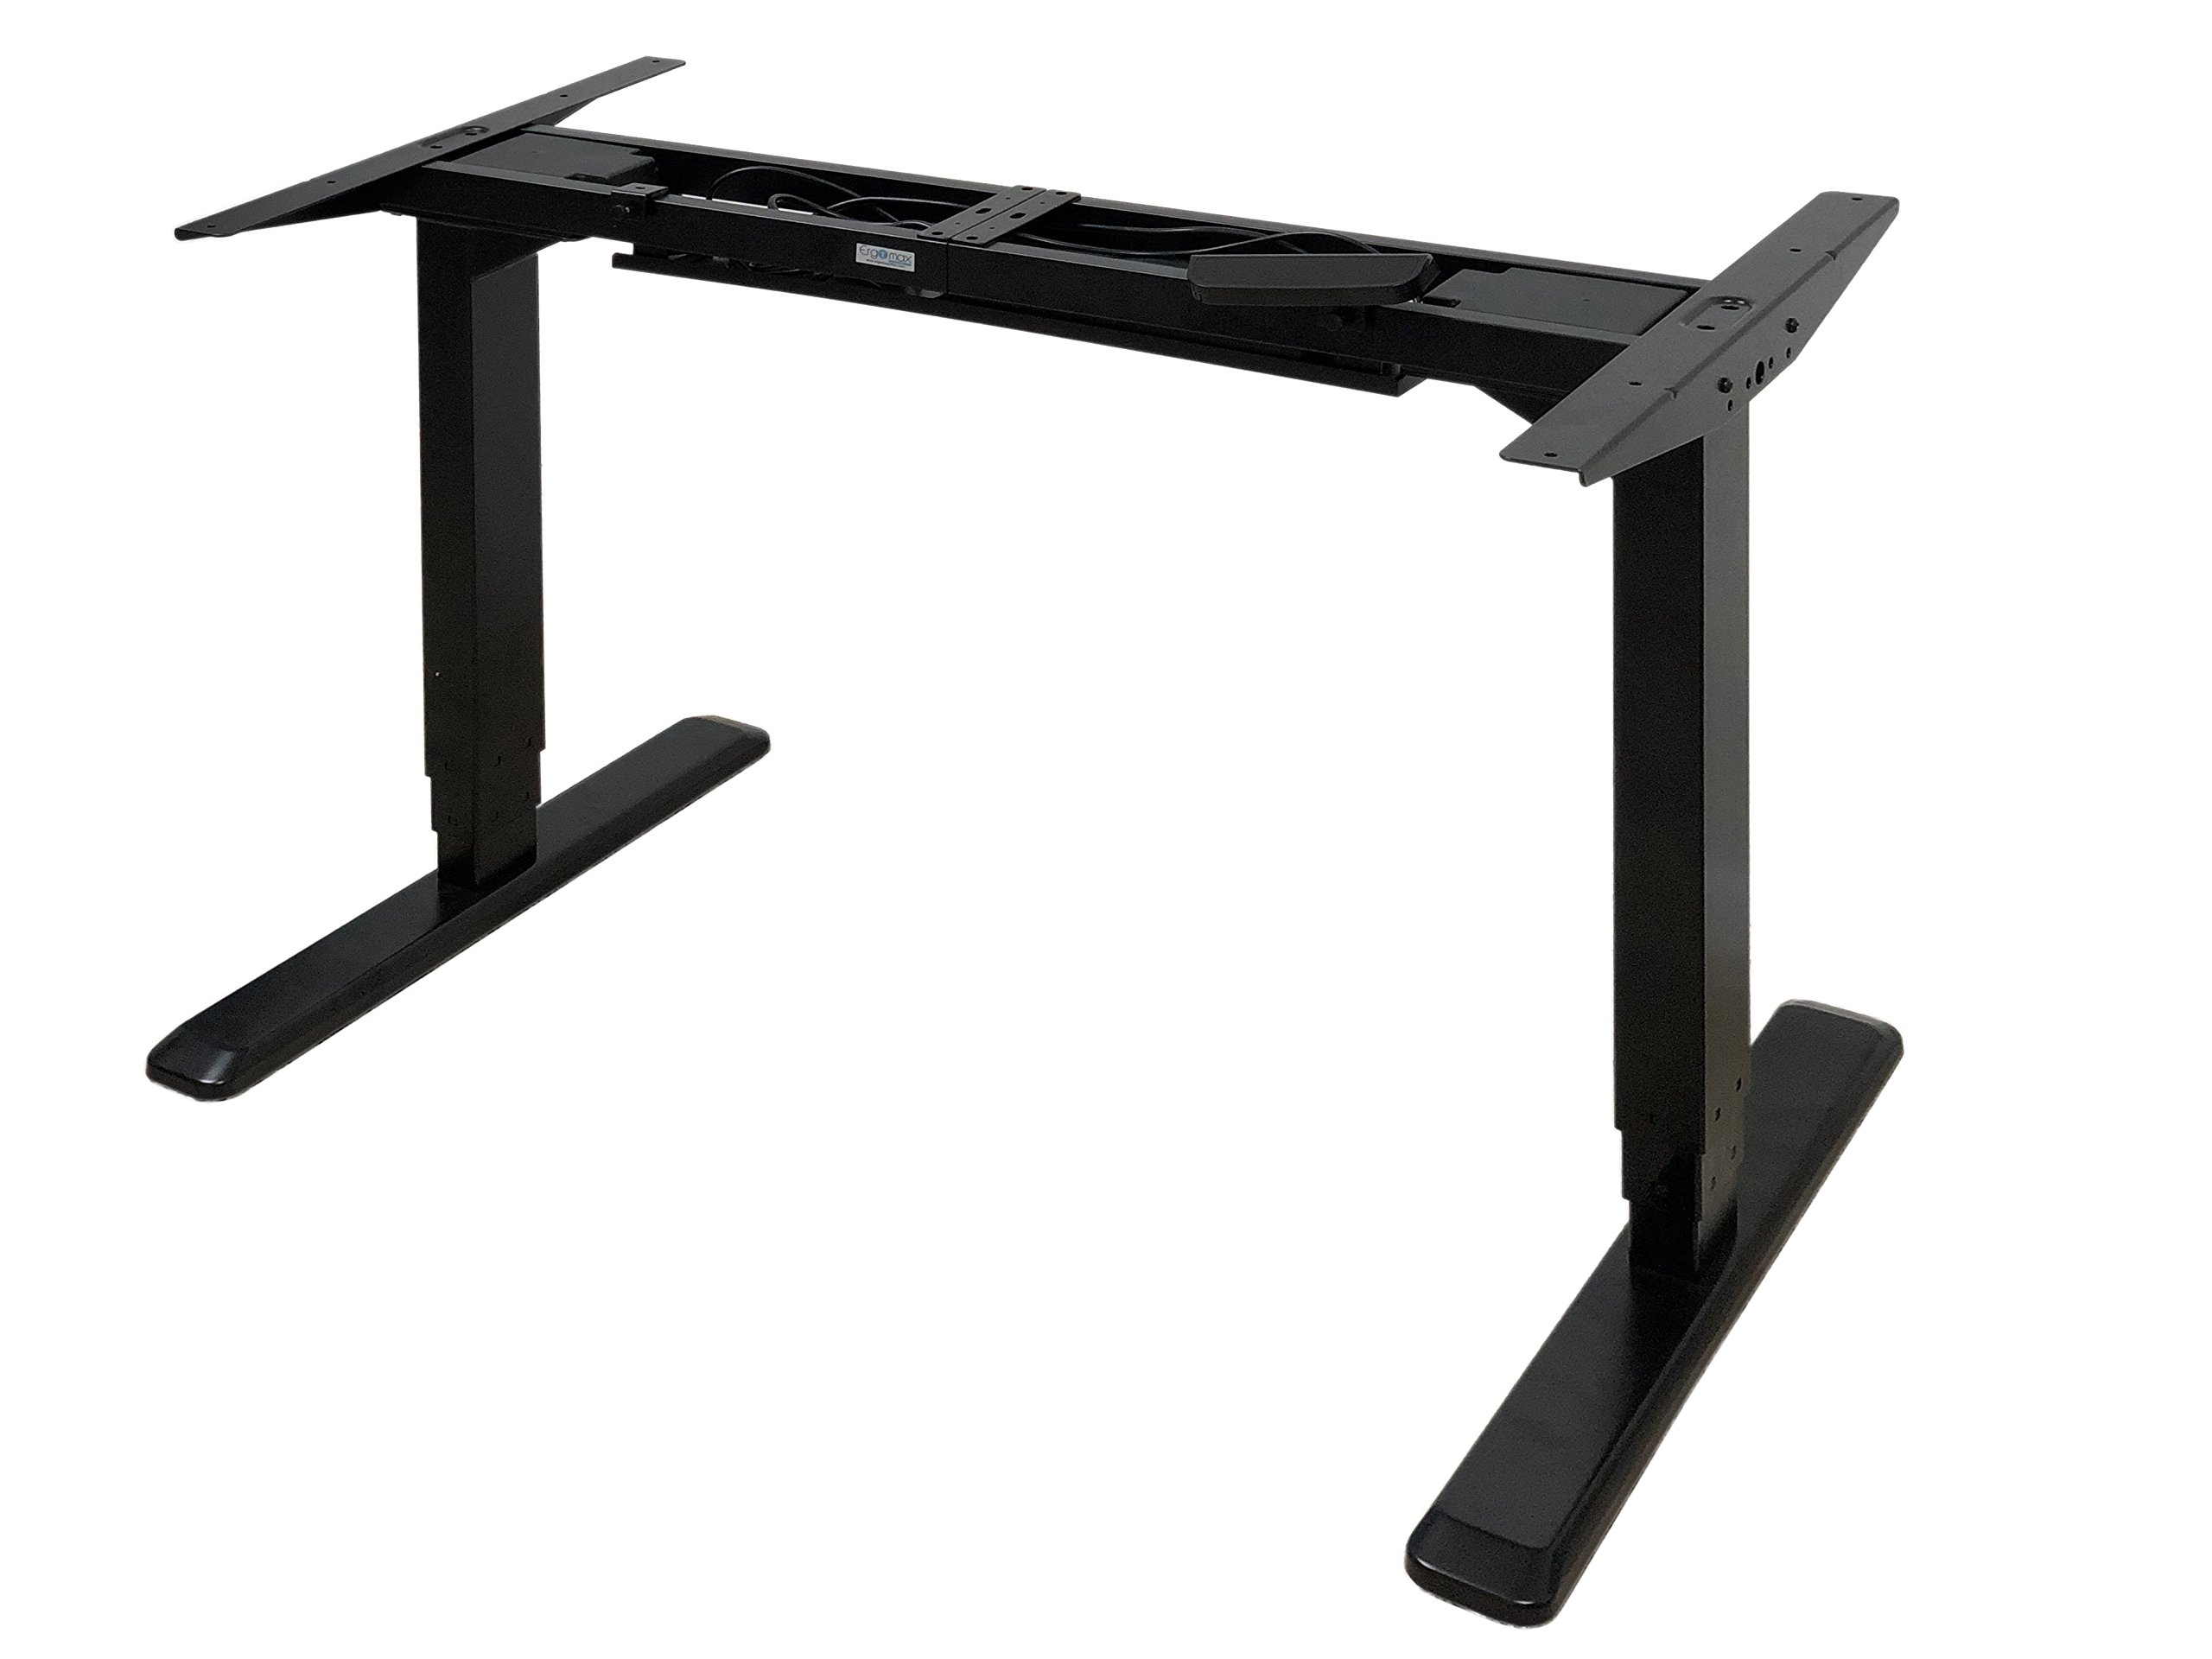 Canary Products ABC592BK Height Adjustable Electric Desk Frame w/Dual Motor, Tabletop Not Included, 50 Inch Max, Black